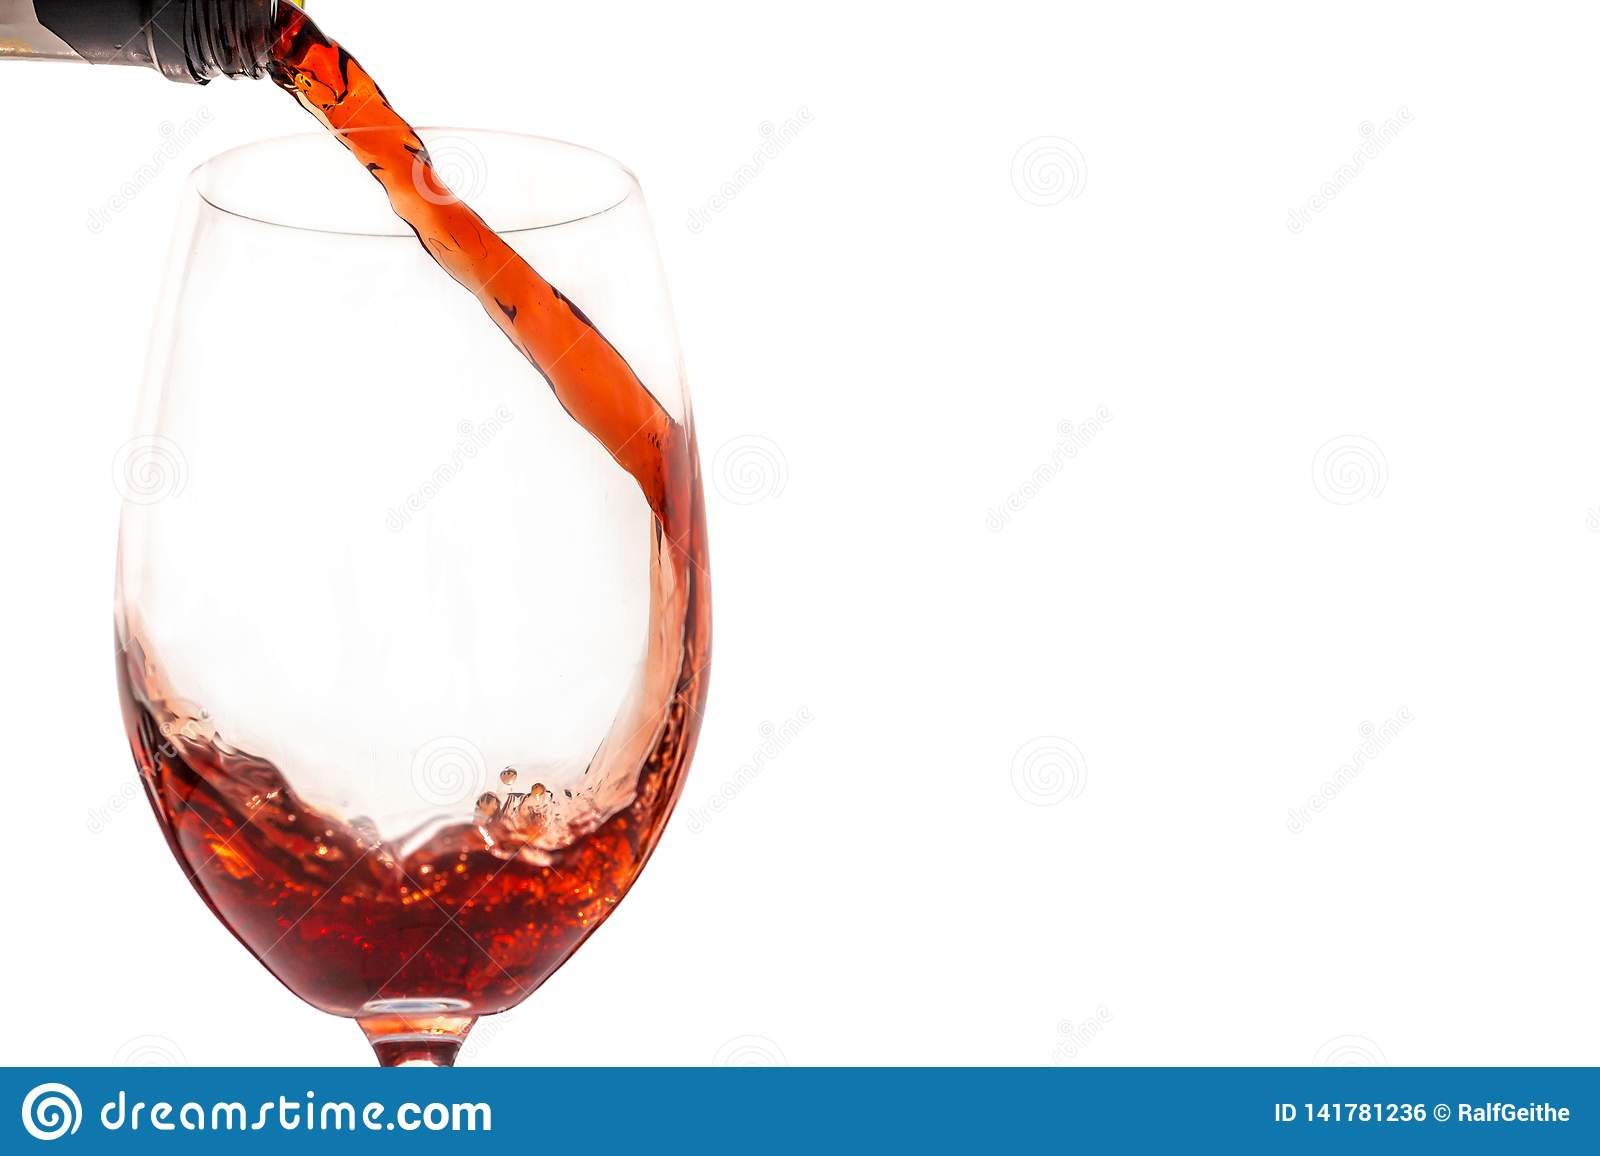 Red wine in glass in front of white background